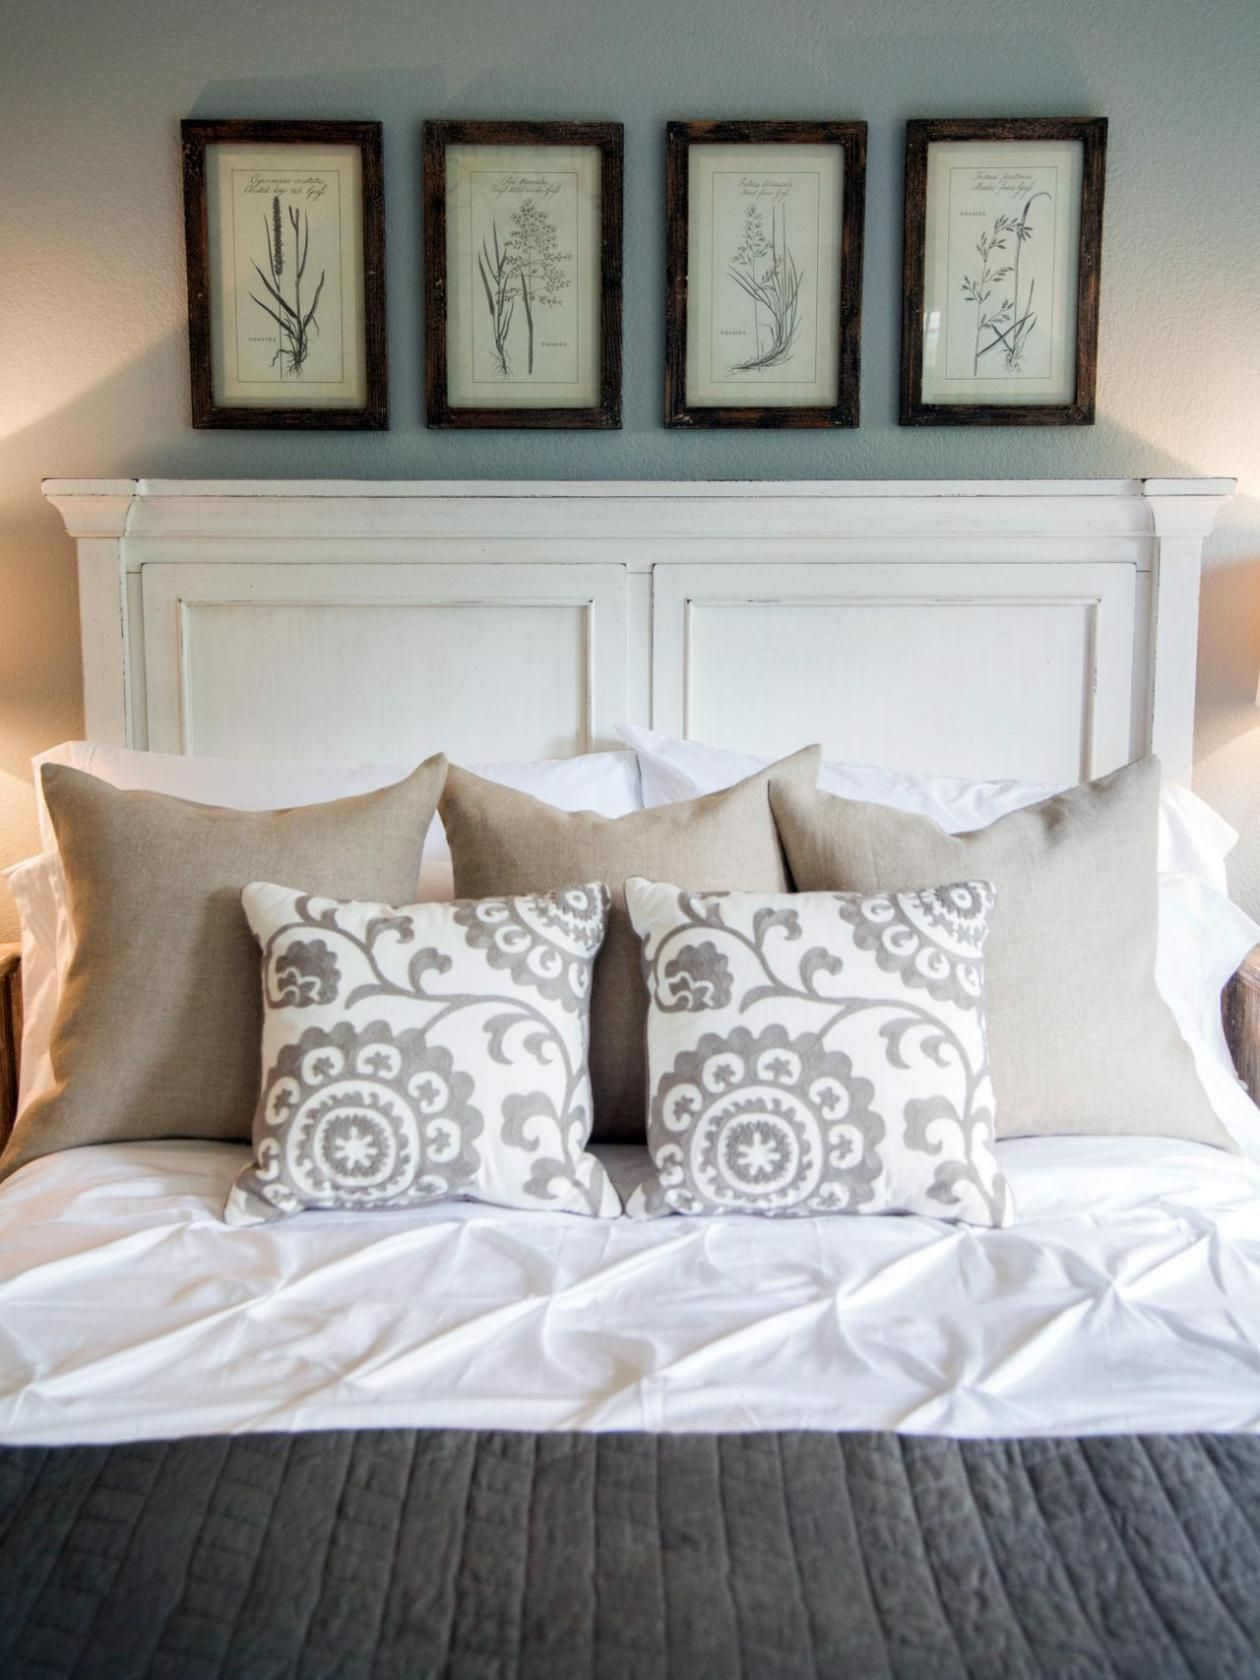 Ashleyfurniture Com Bedroom Sets: Recreate Your Favorite Fixer Upper Bedrooms With This